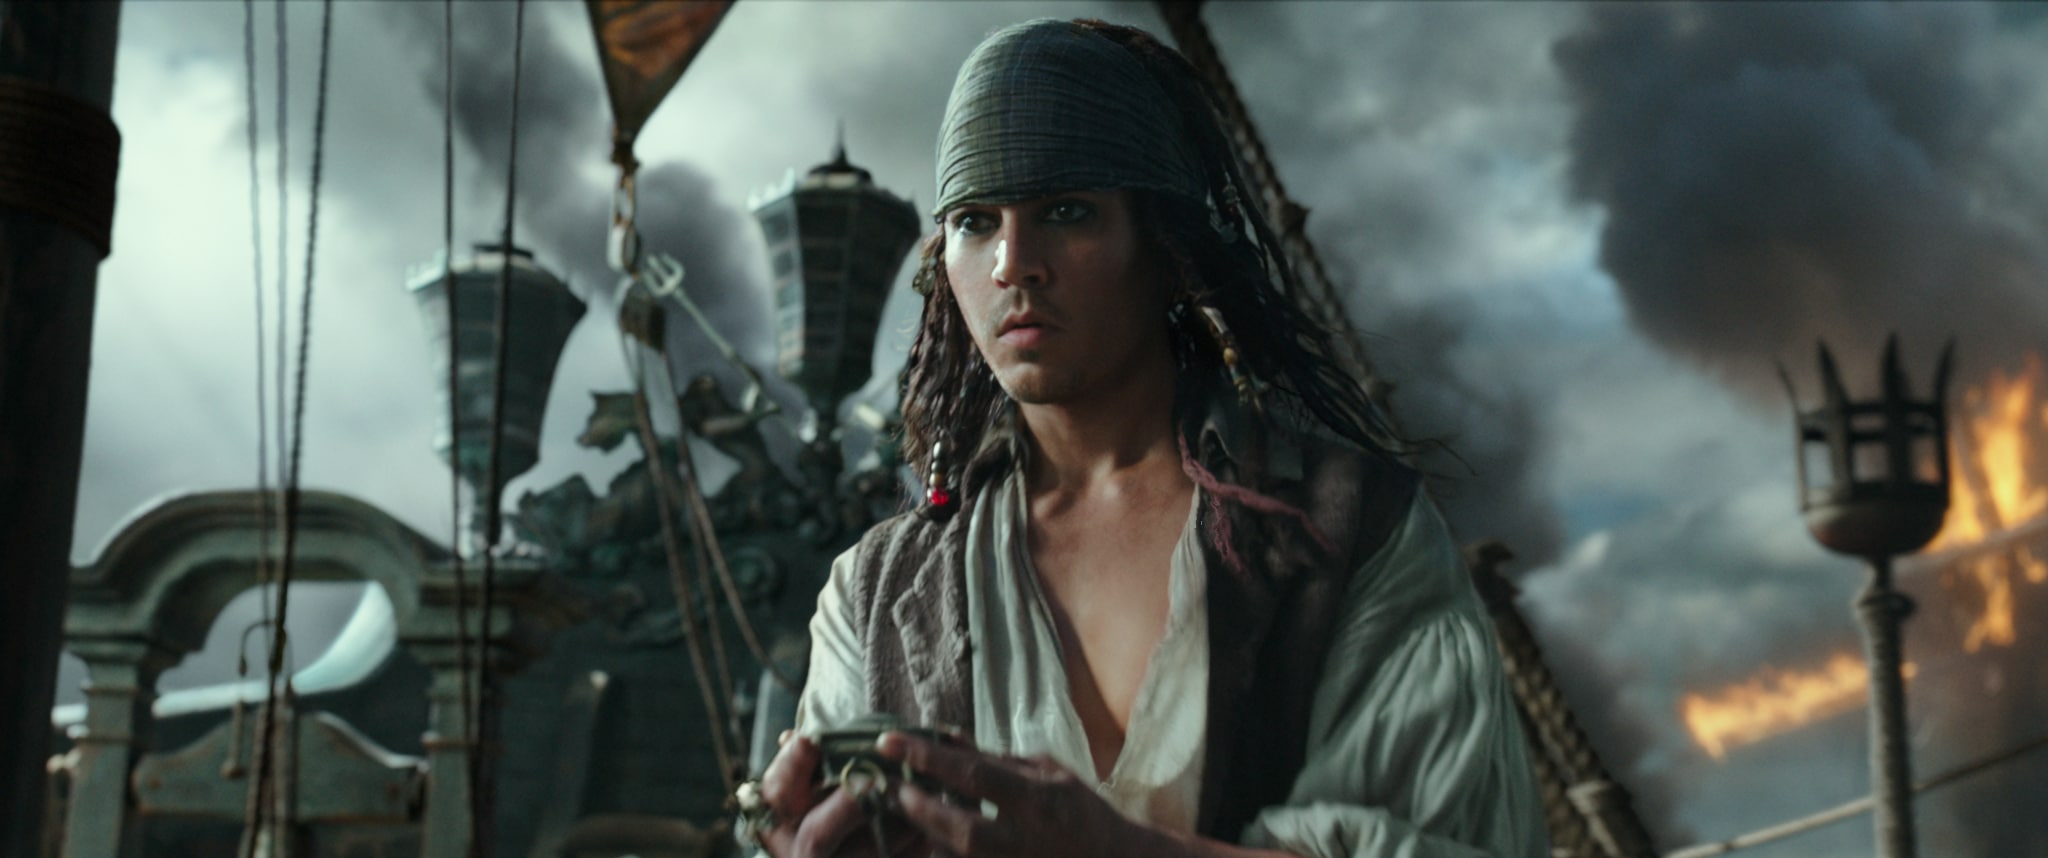 Pirates of the Caribbean: Dead Men Tell No Tales – NEW Trailer Available